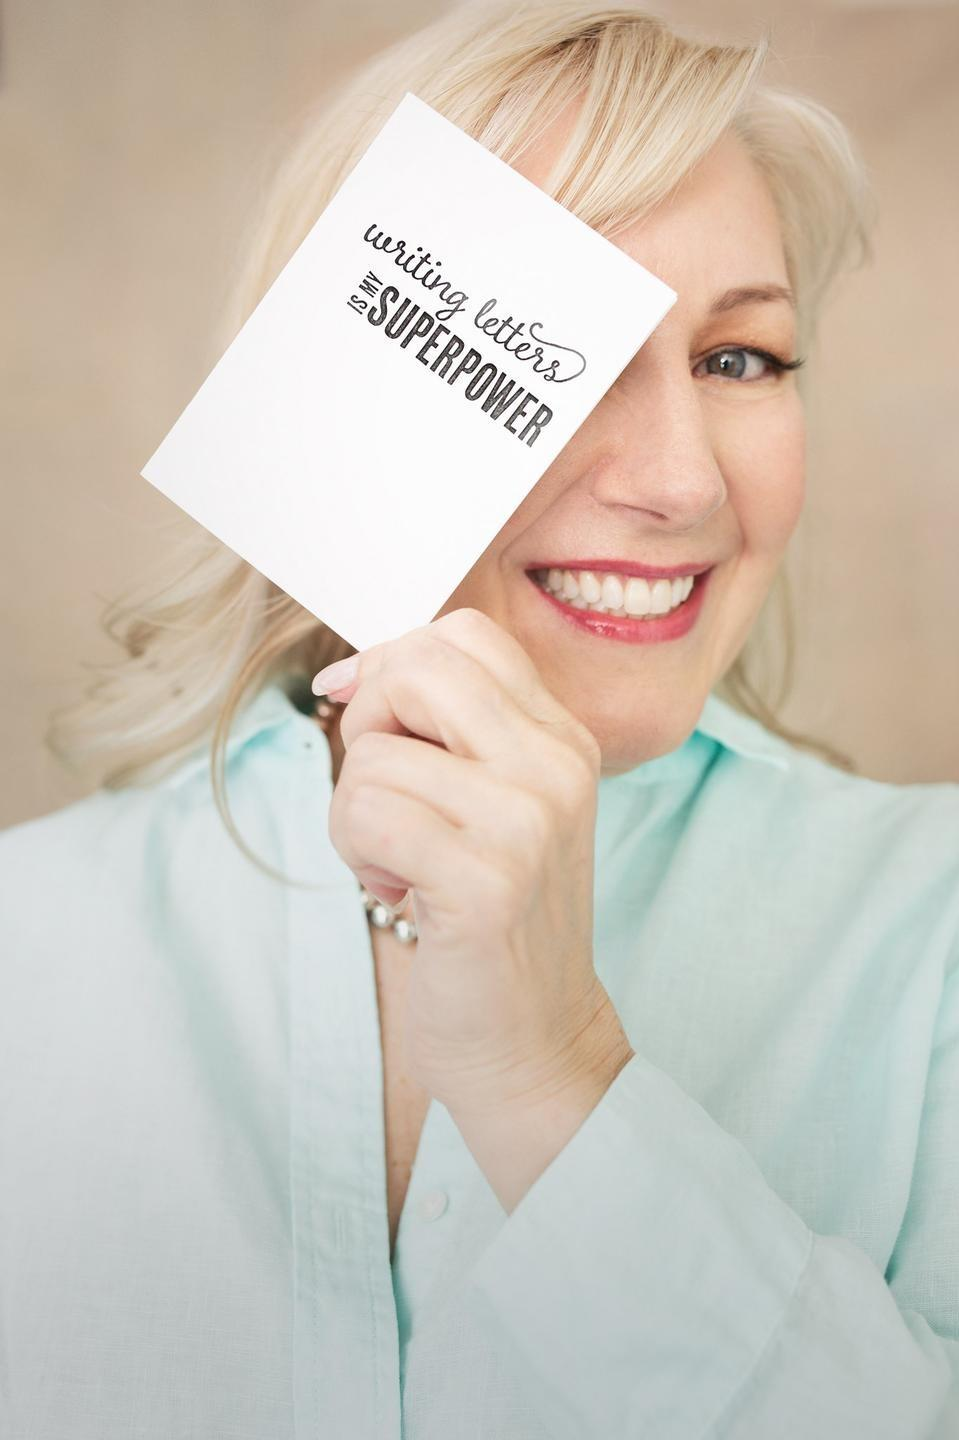 Beth Ann smiling and holding a note card.